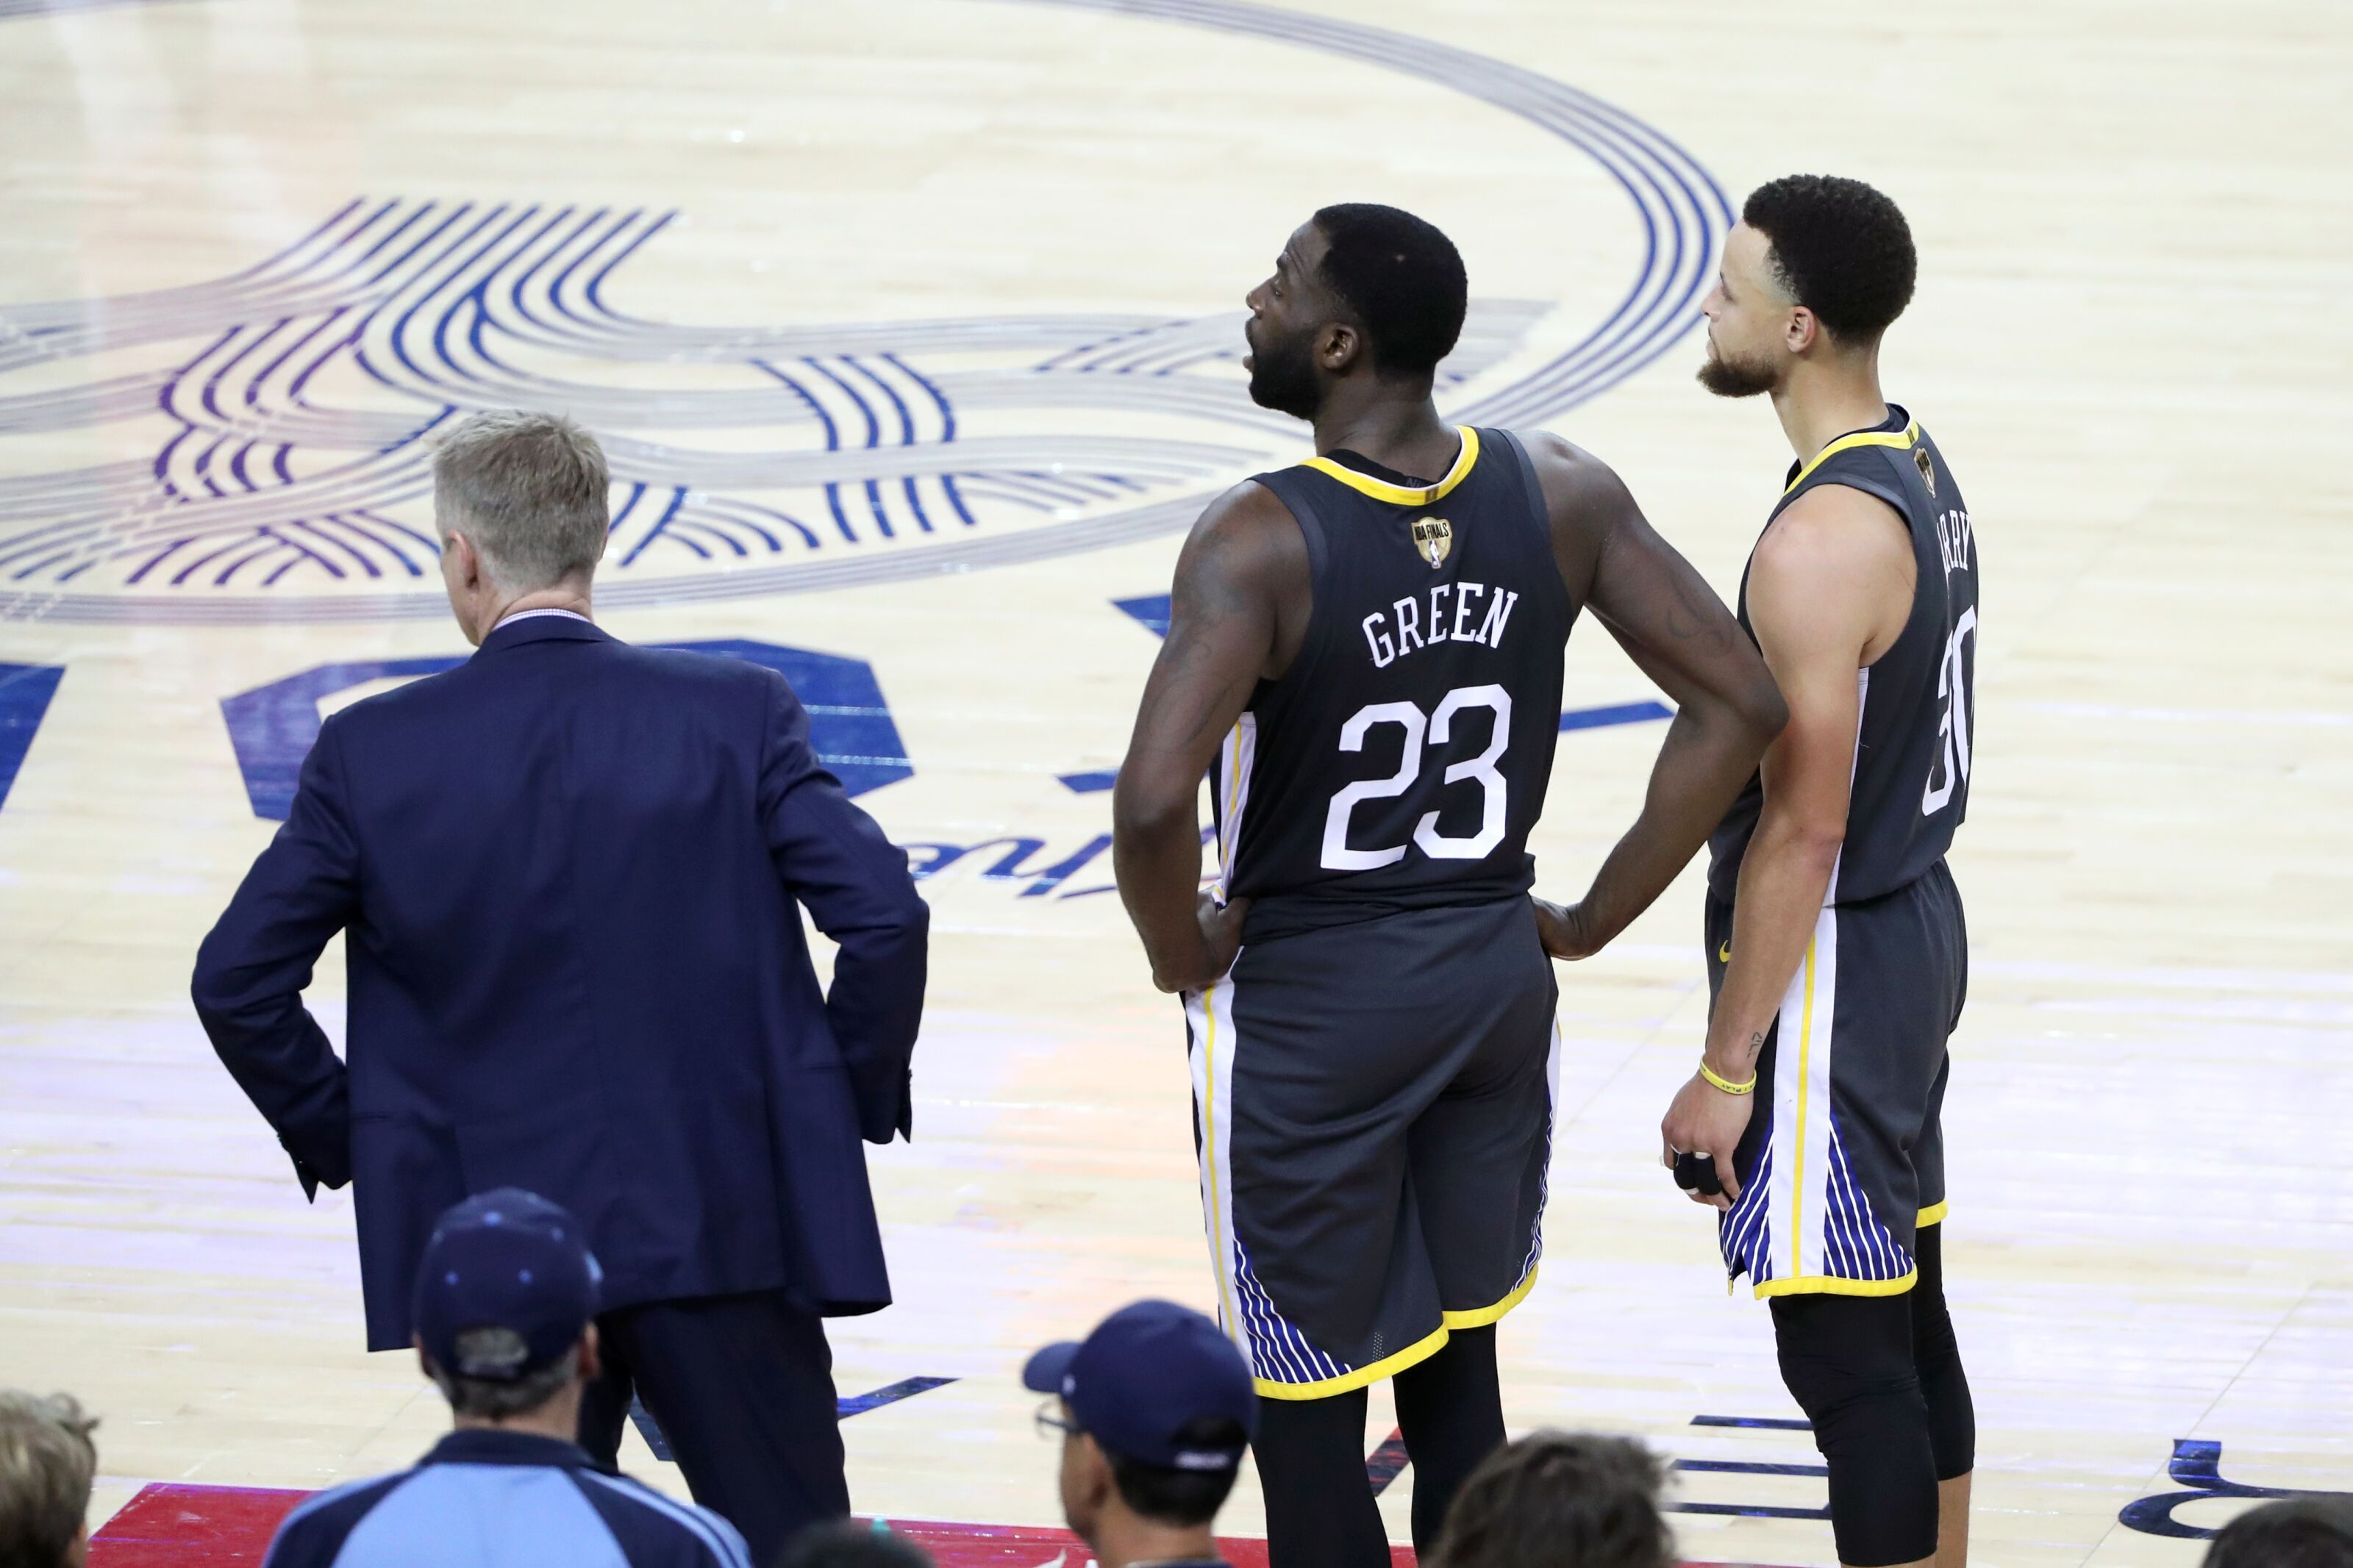 Golden State Warriors: Battle to backup Draymond Green will get messy